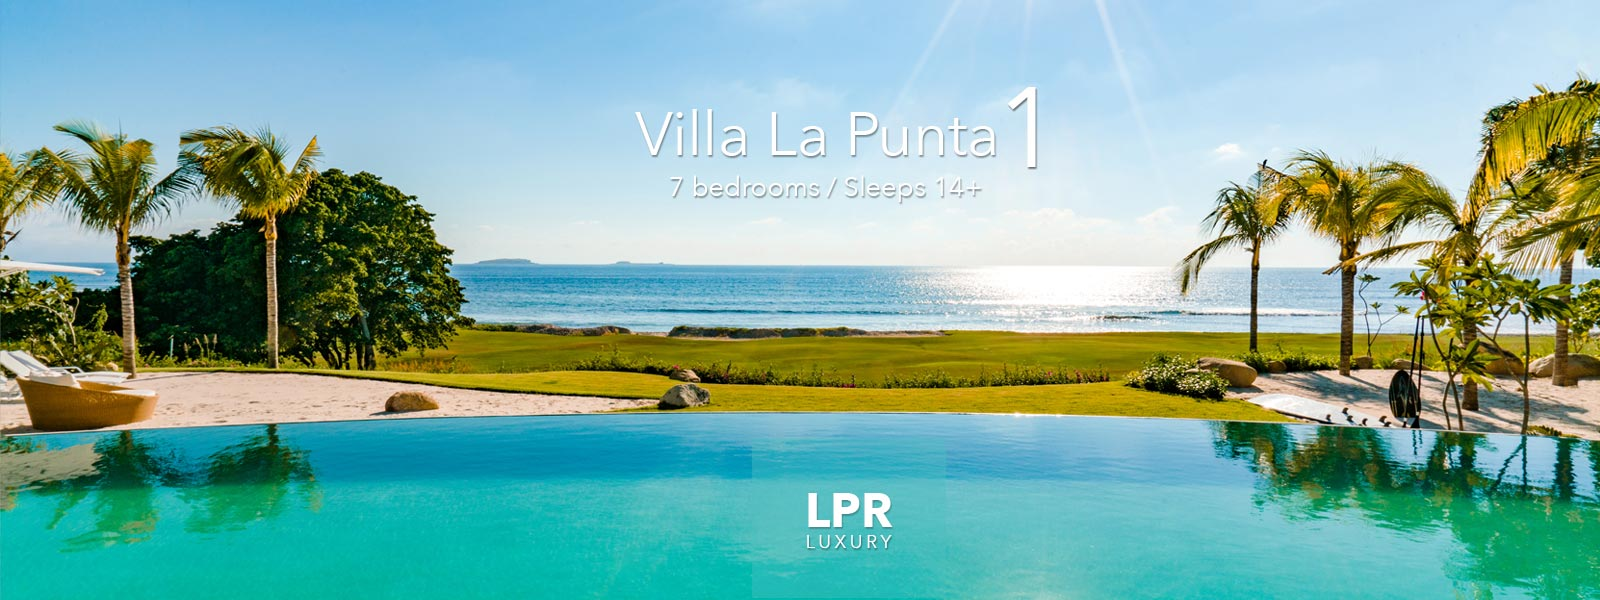 Villa La Punta 1 - Luxury Punta Mita Resort Vacation Villa - Riviera Nayarit, Mexico